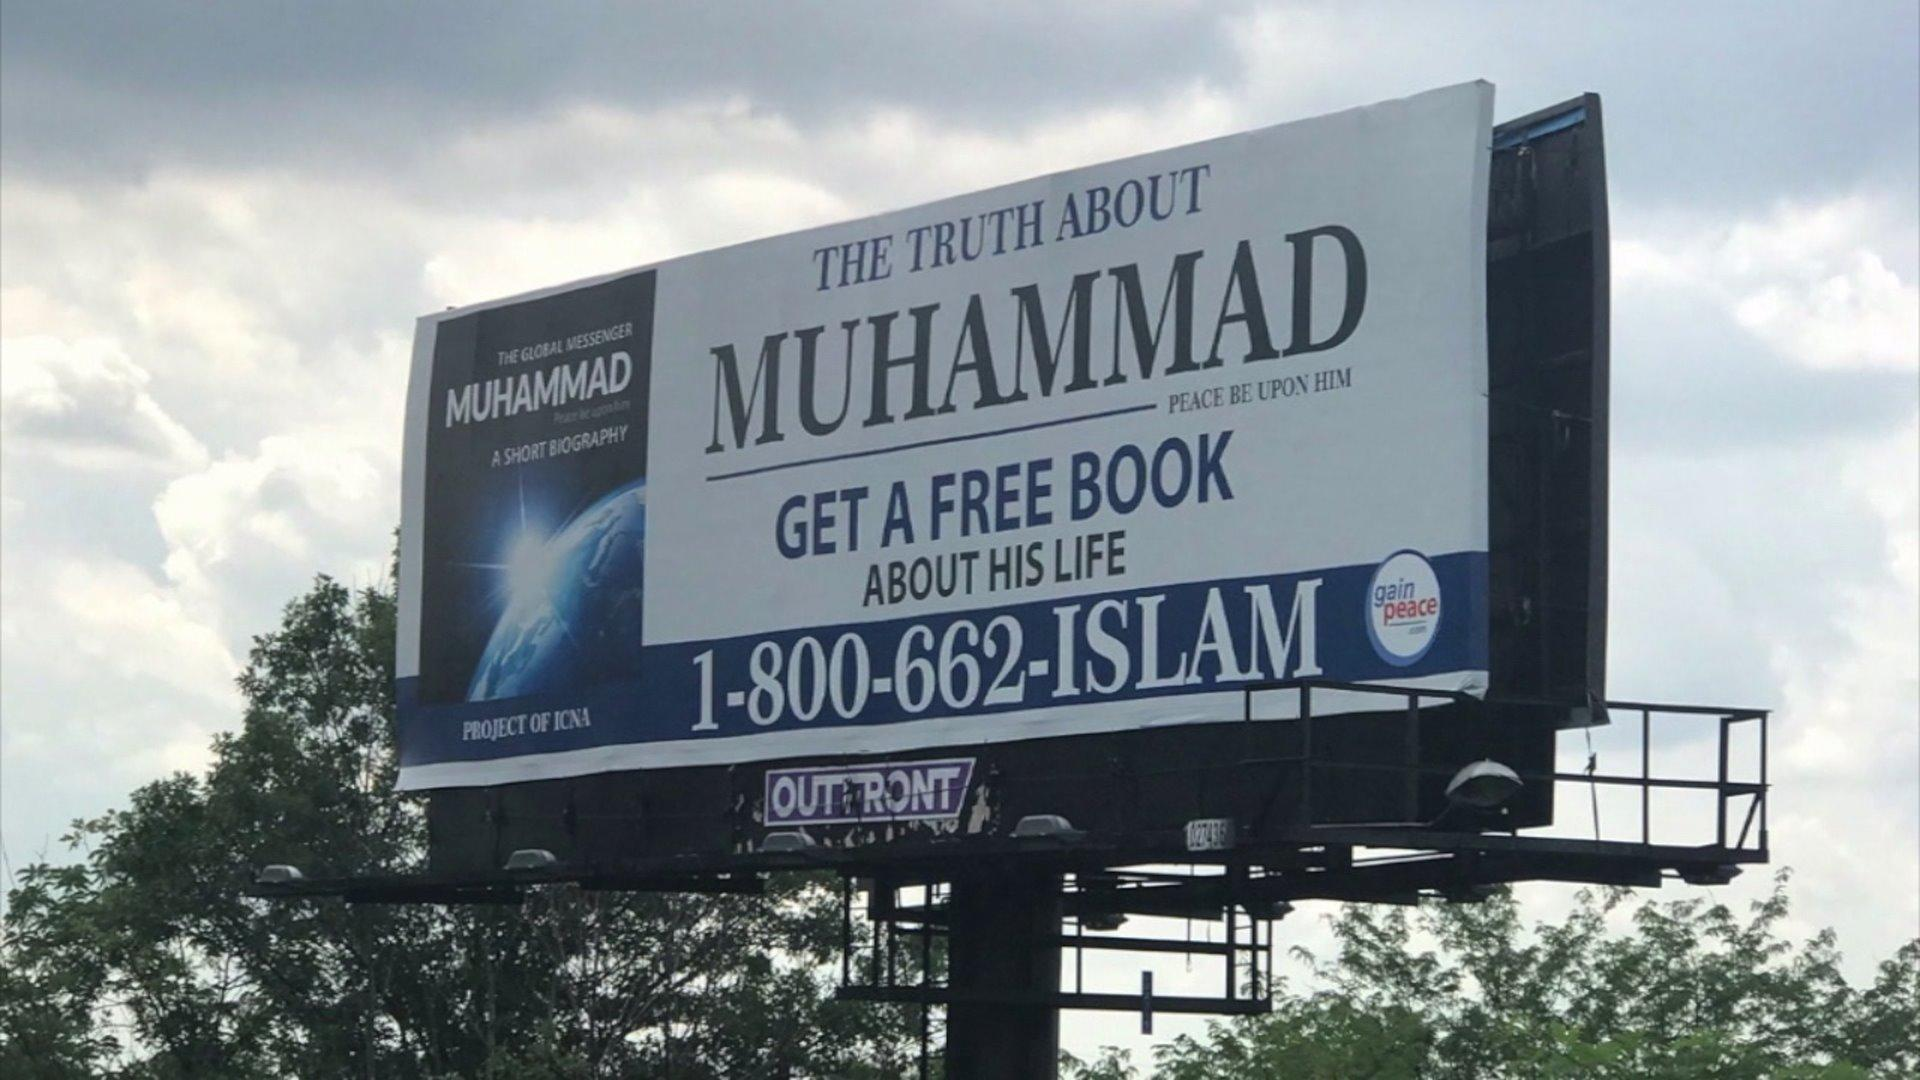 Muslim Group Responds to Controversial 'The Perfect Man' Billboard